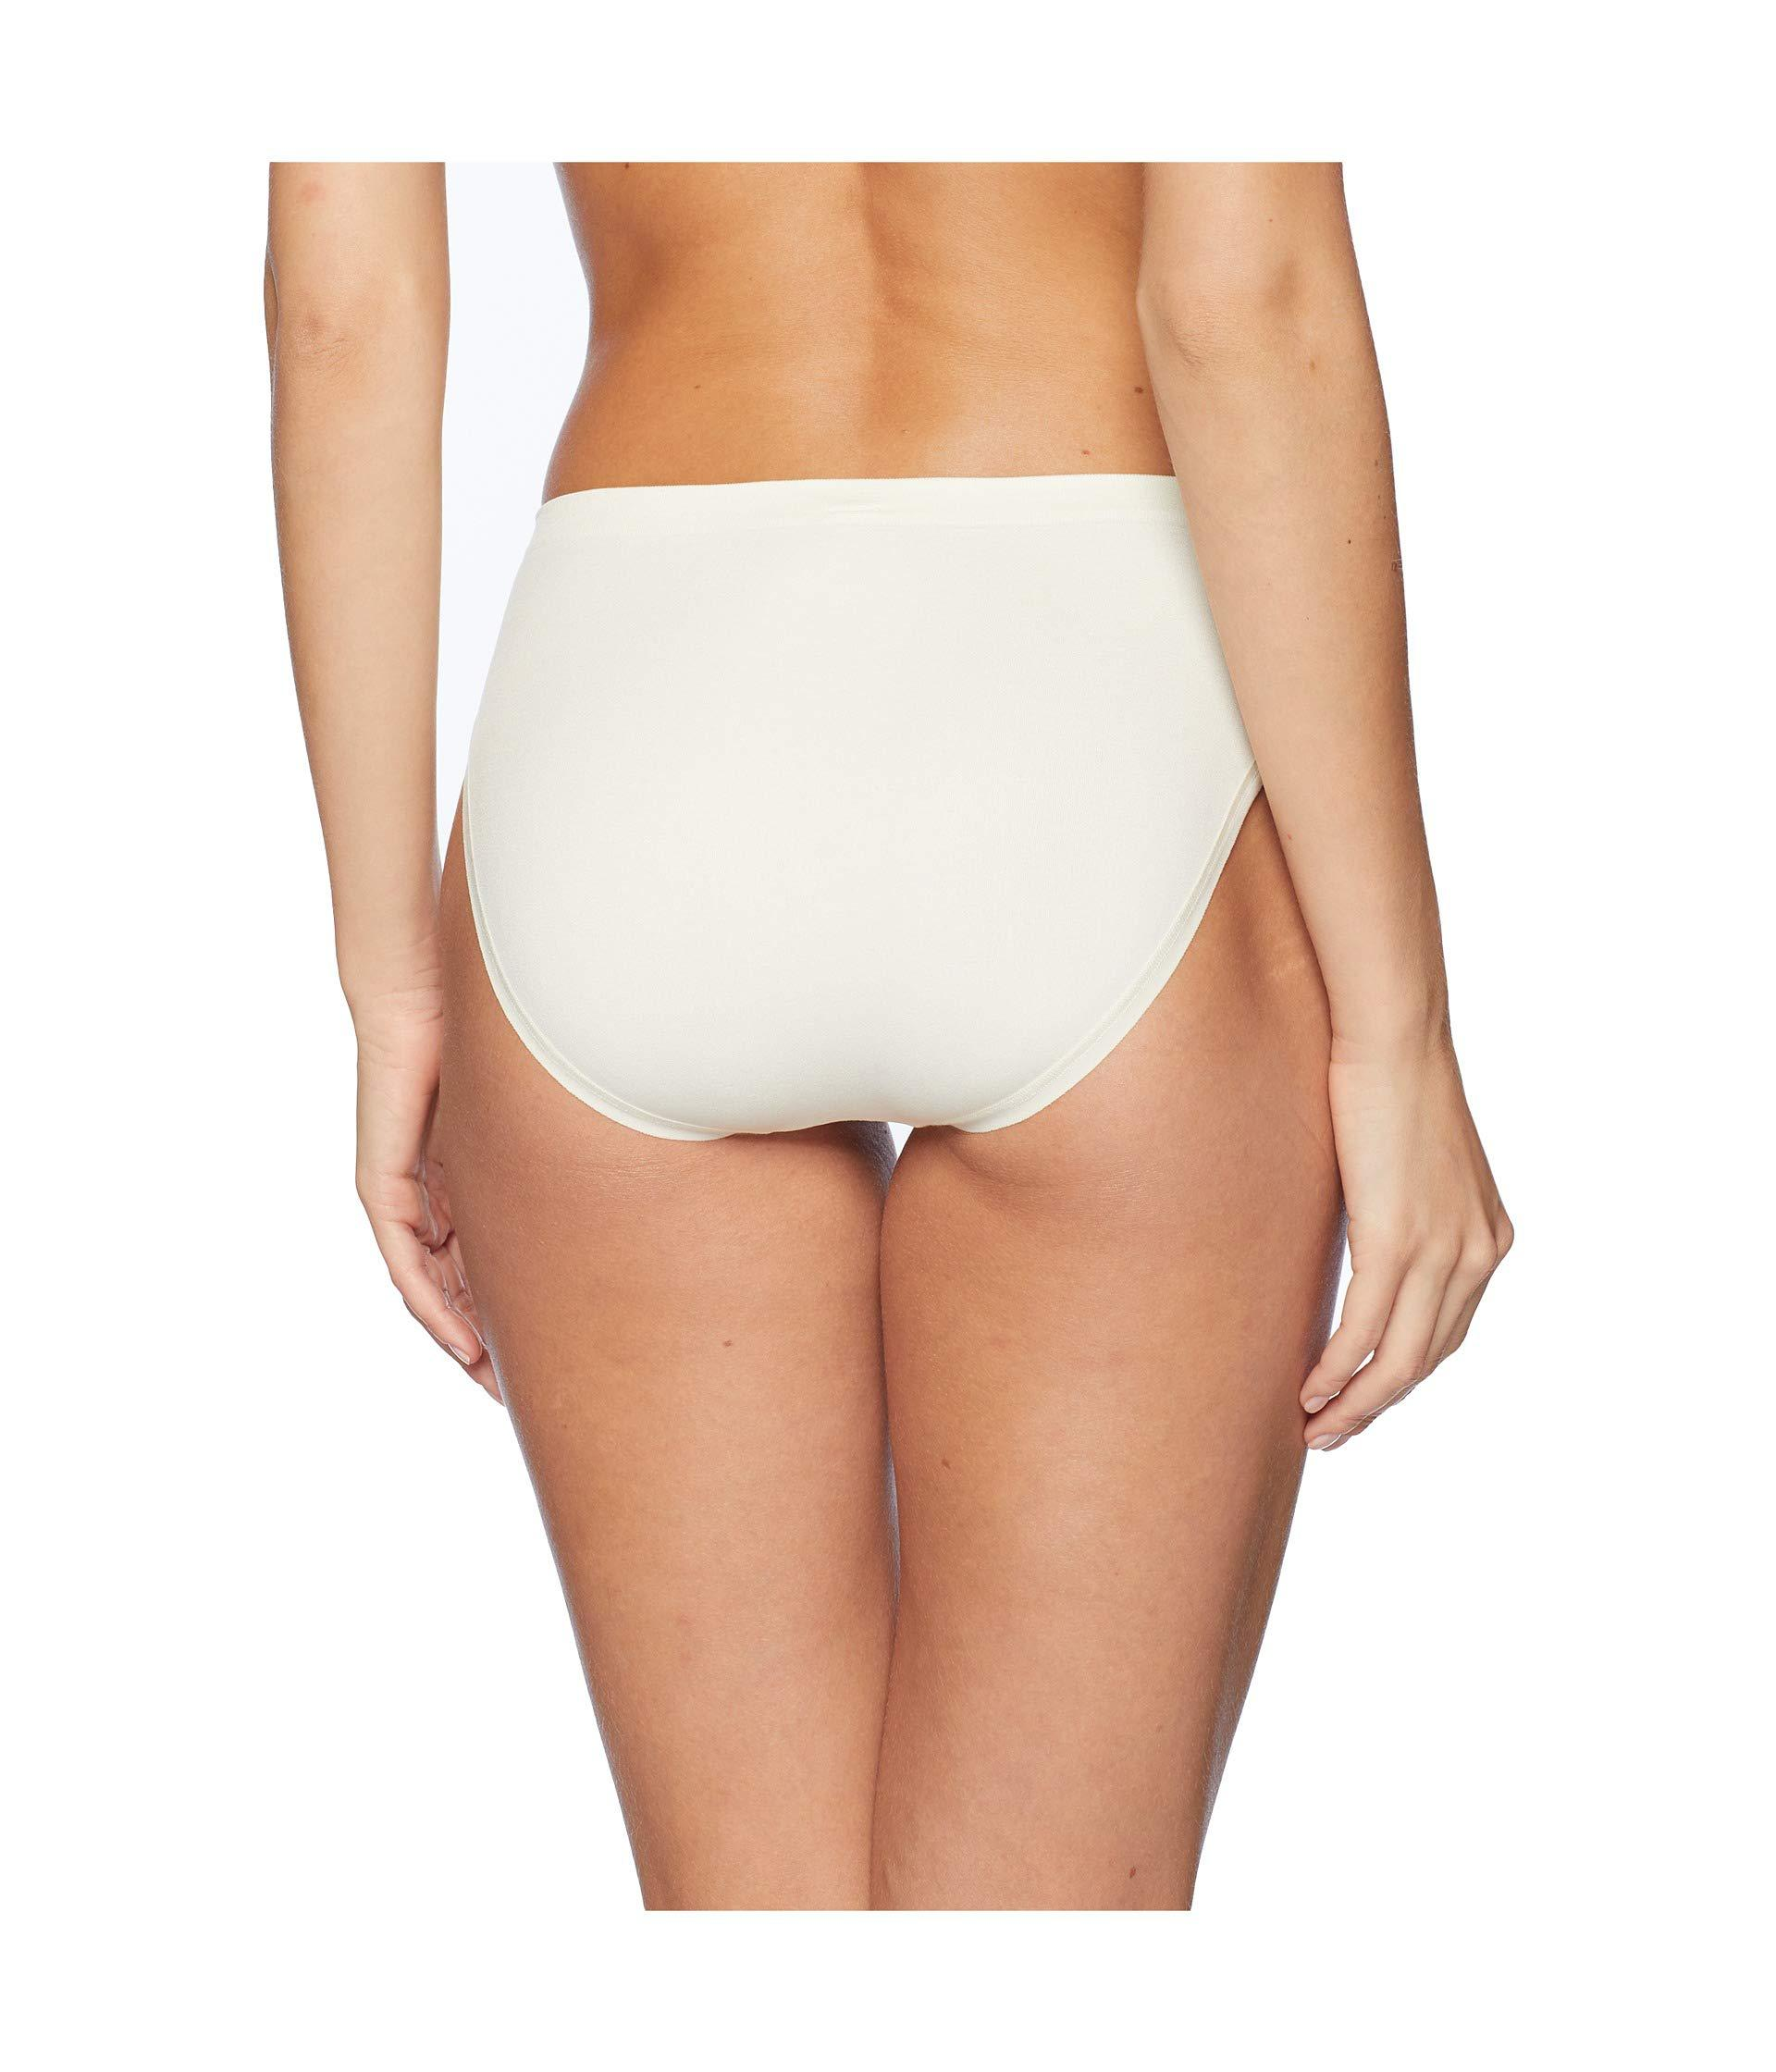 d8518bf13e1 Lyst - Commando Minimalist French Cut Panty in White